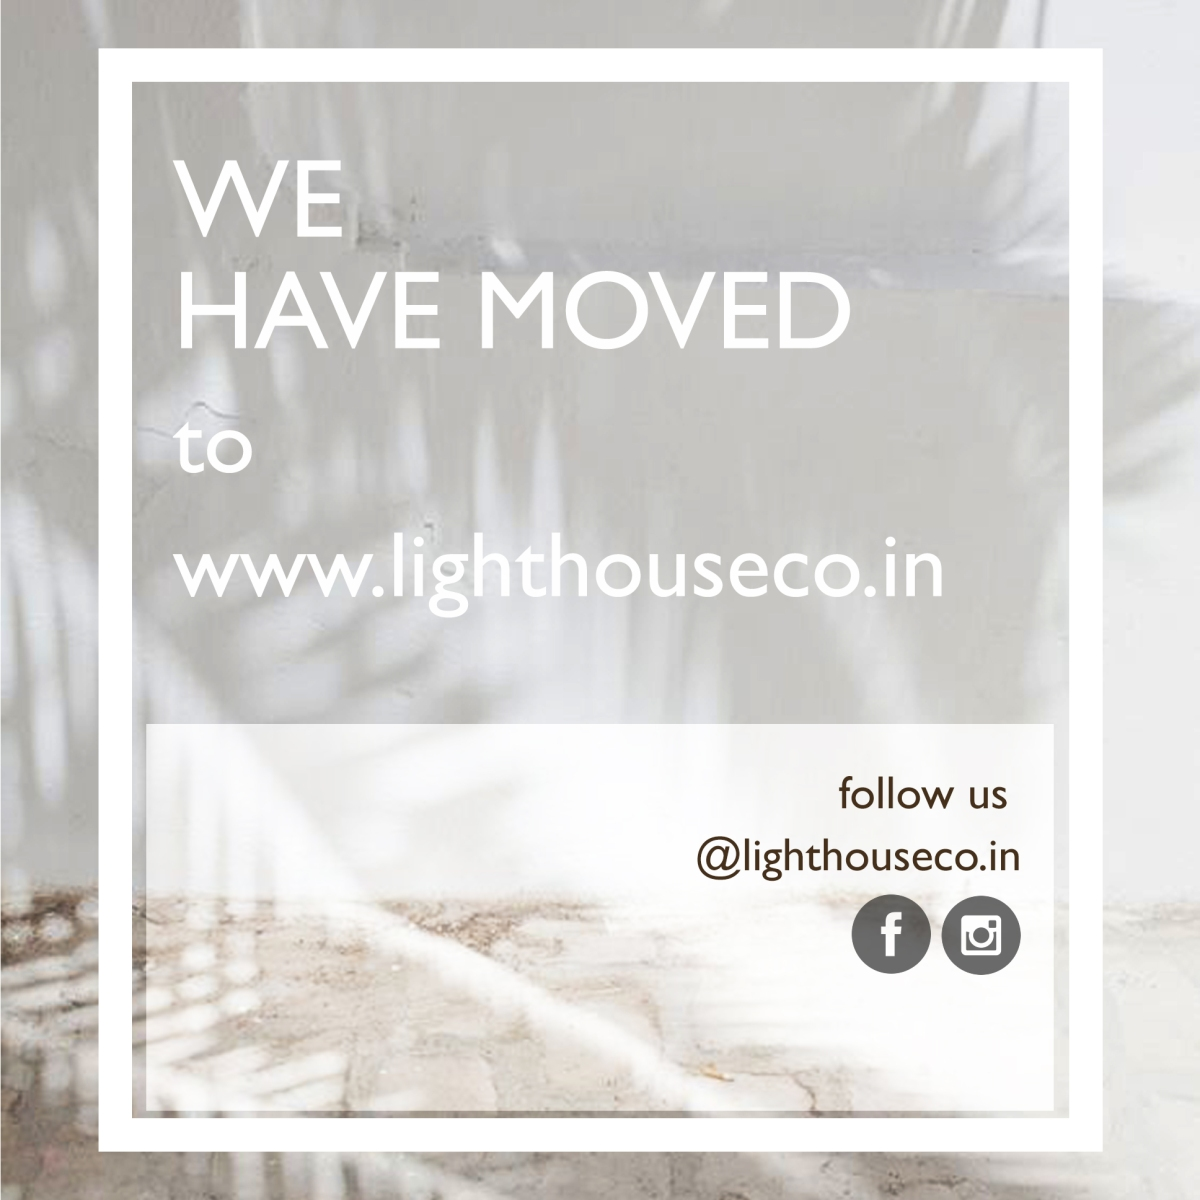 We have moved ...